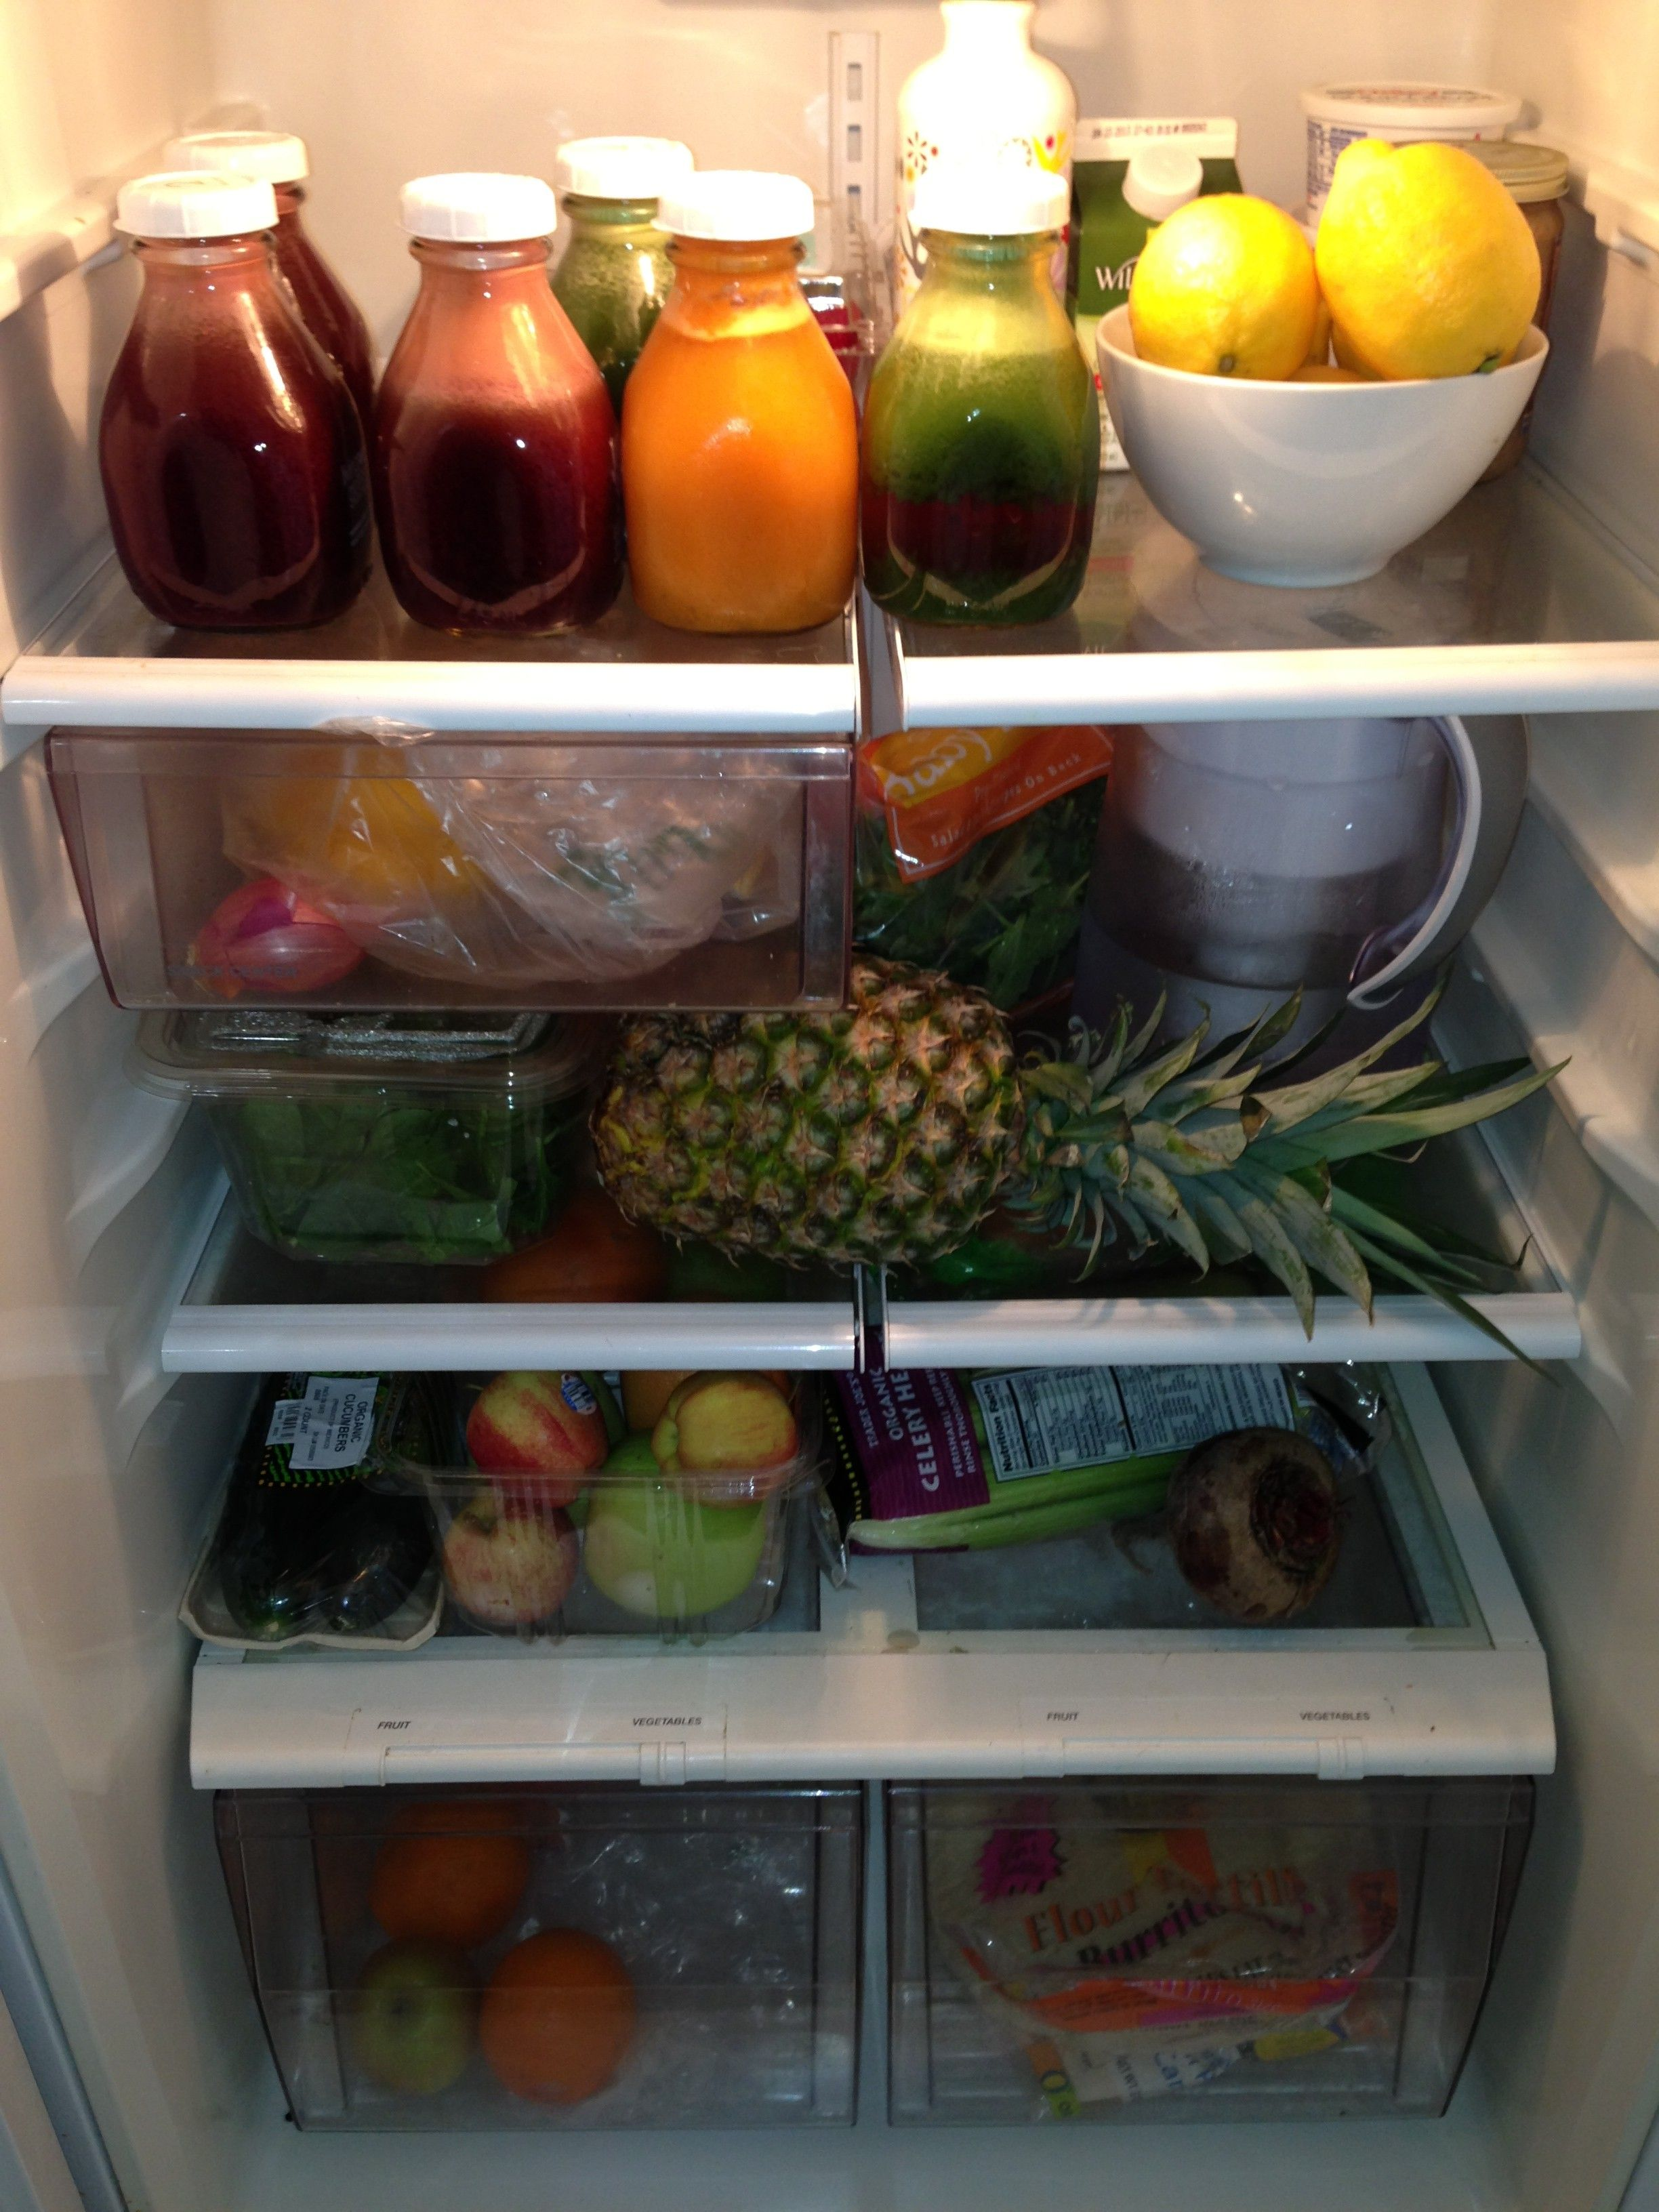 juice fasting on a budget i have decided on day juice fast fellow pinner wrote juice fasting on a budget i have decided on 14 day juice fast after we are moved and i have a new job to pay for it